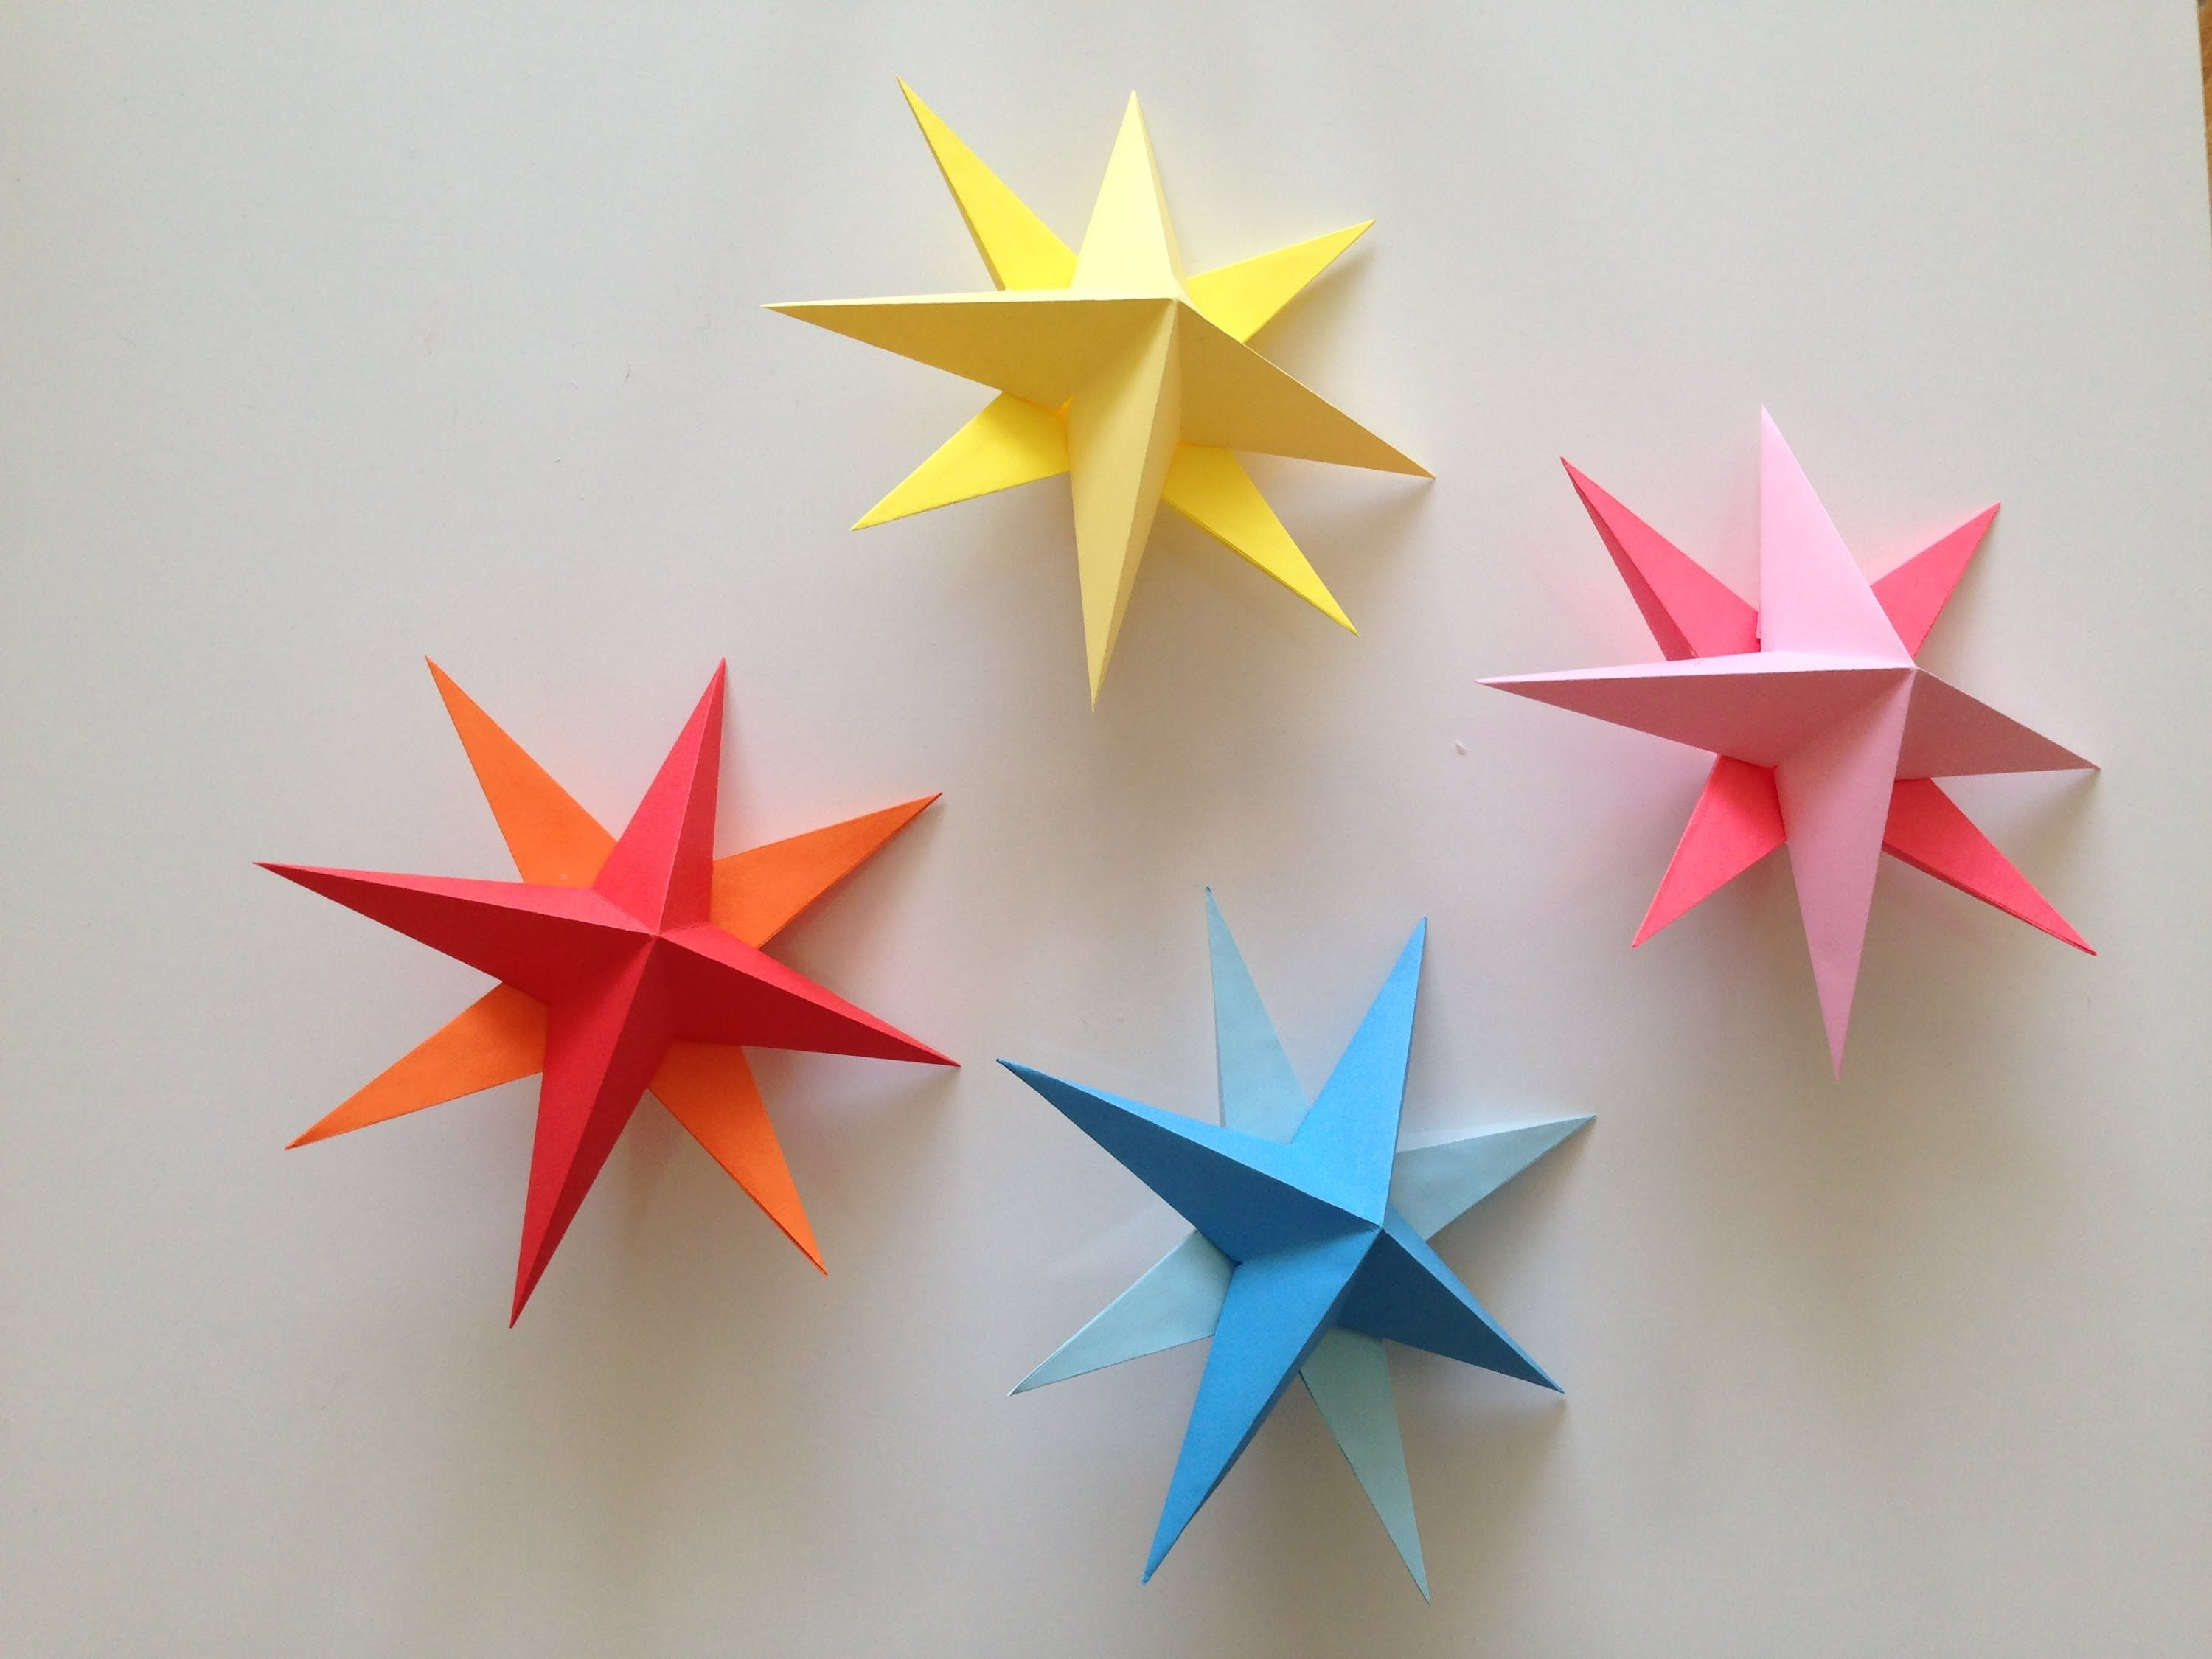 How To Make Simple 3D Origami Paper Stars